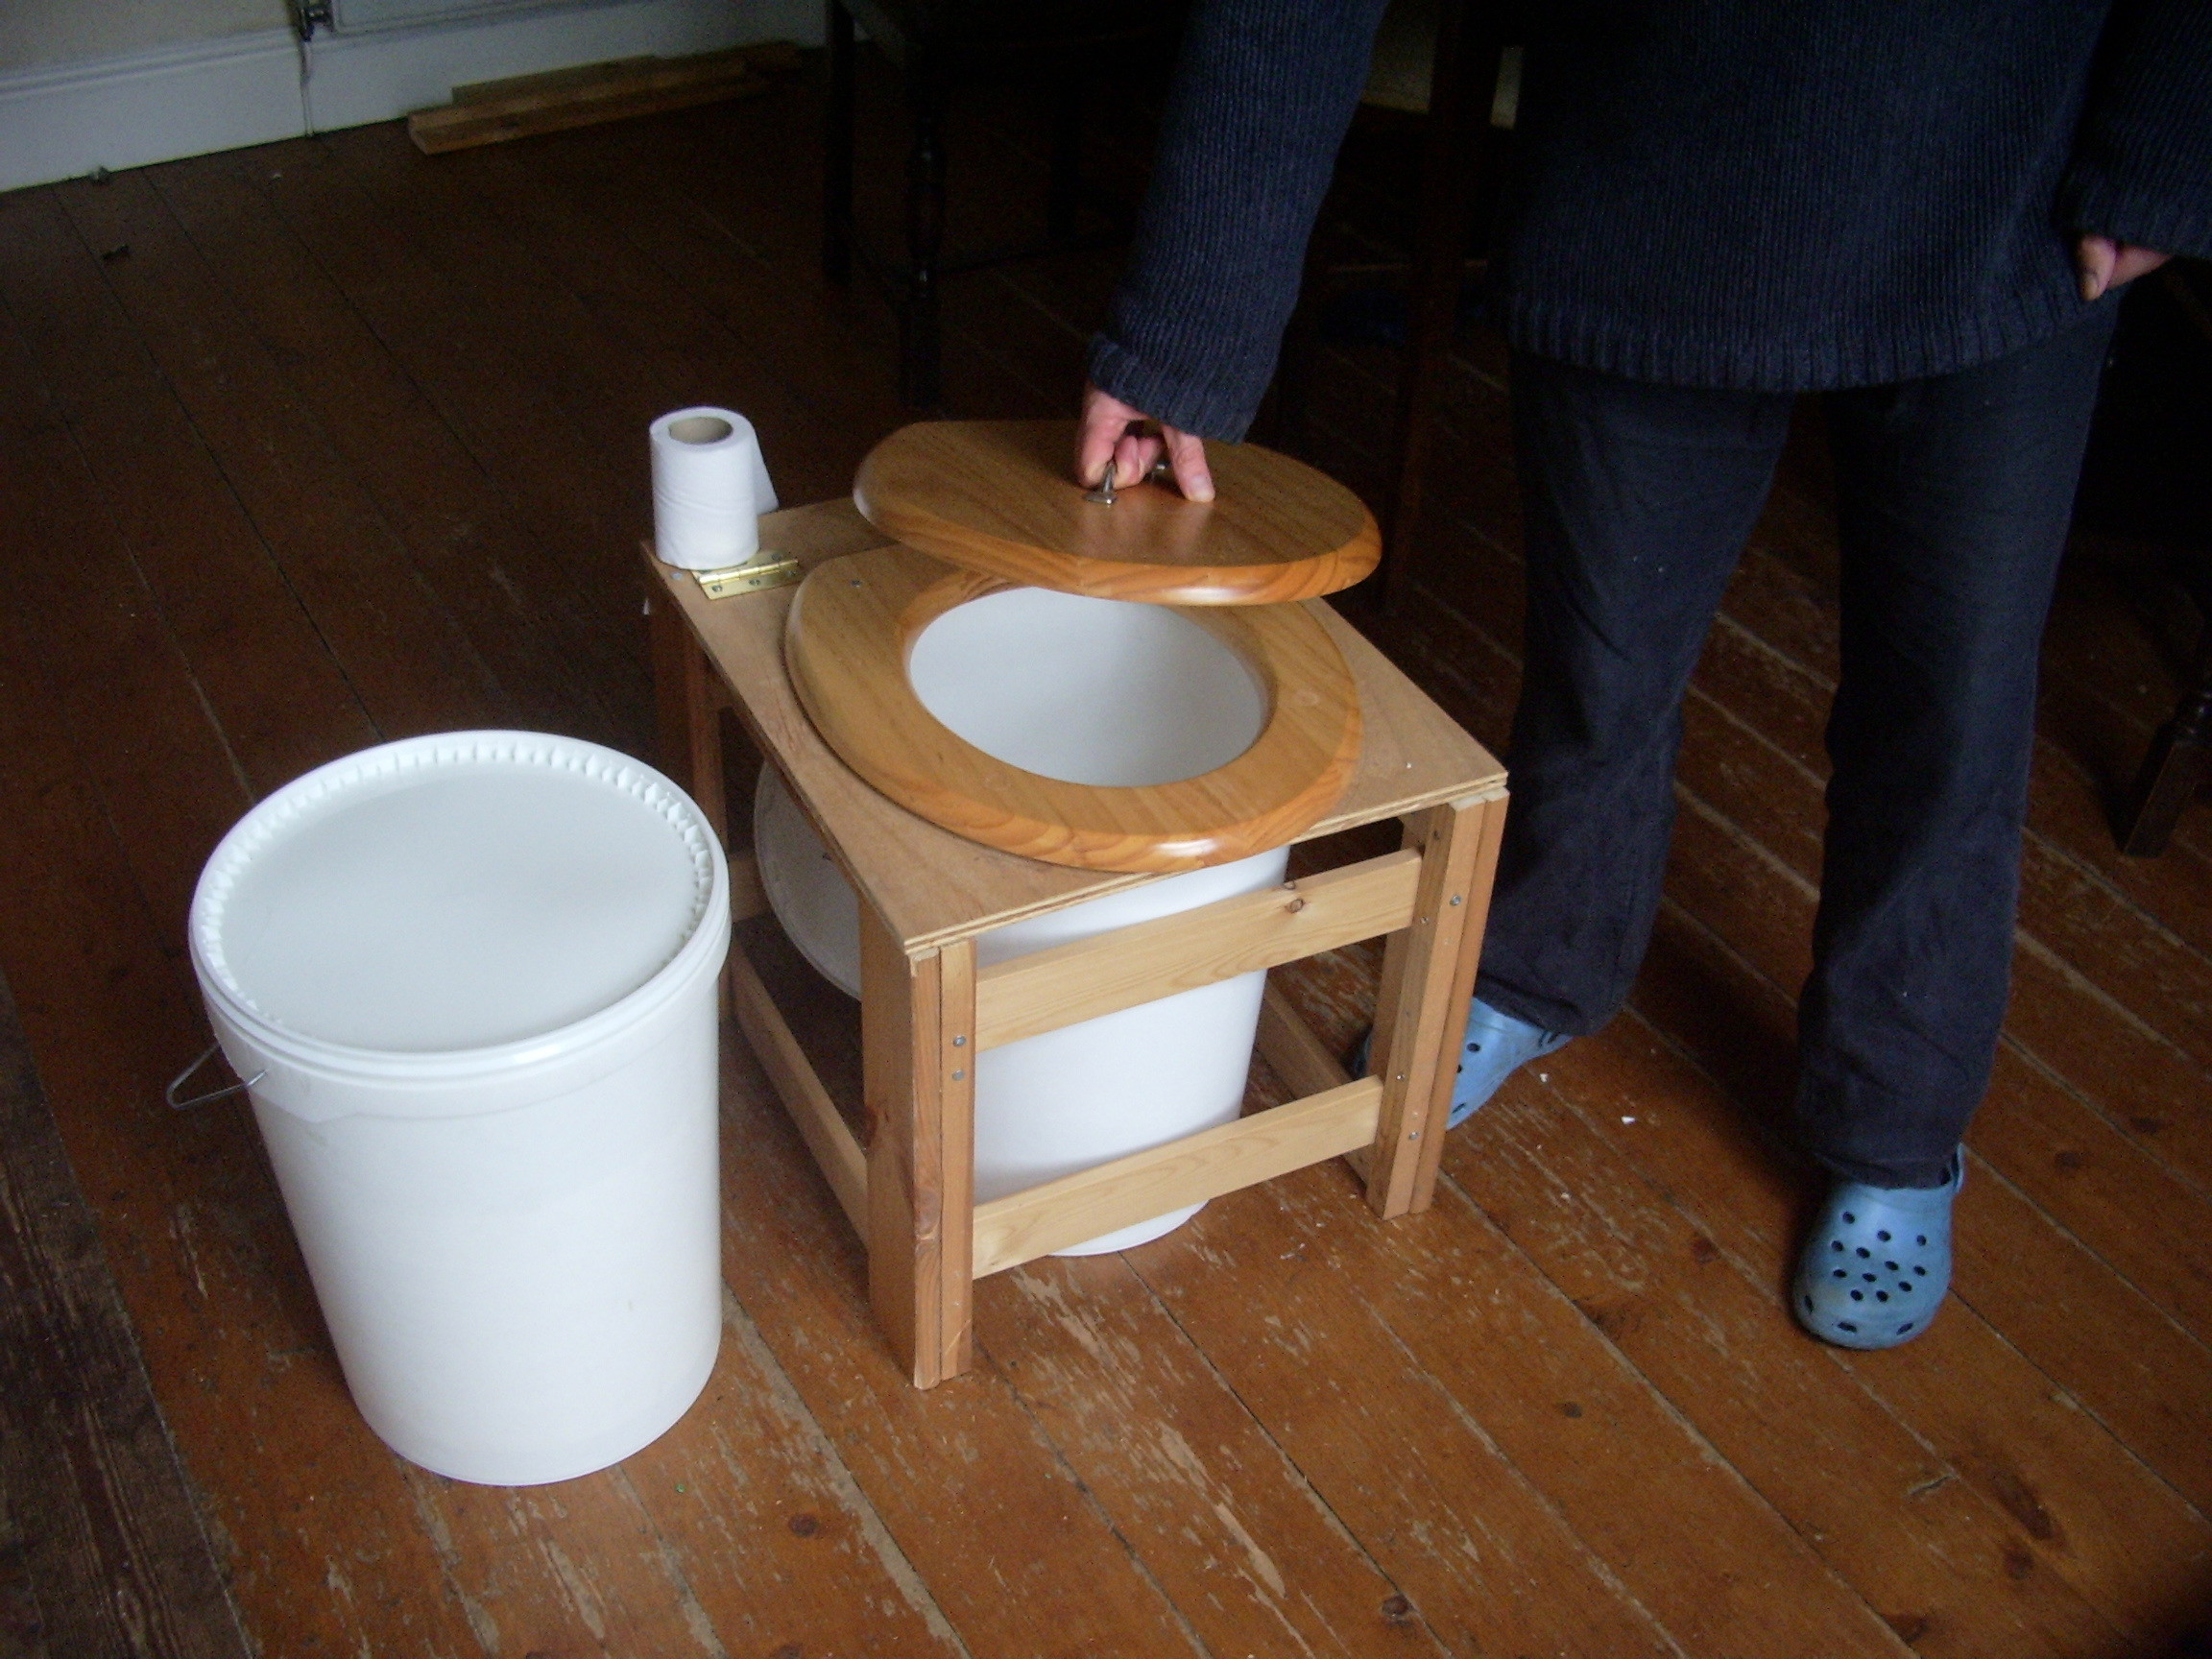 Best ideas about DIY Composting Toilet . Save or Pin the mellow fellow goes for a ride diy posting toilets Now.